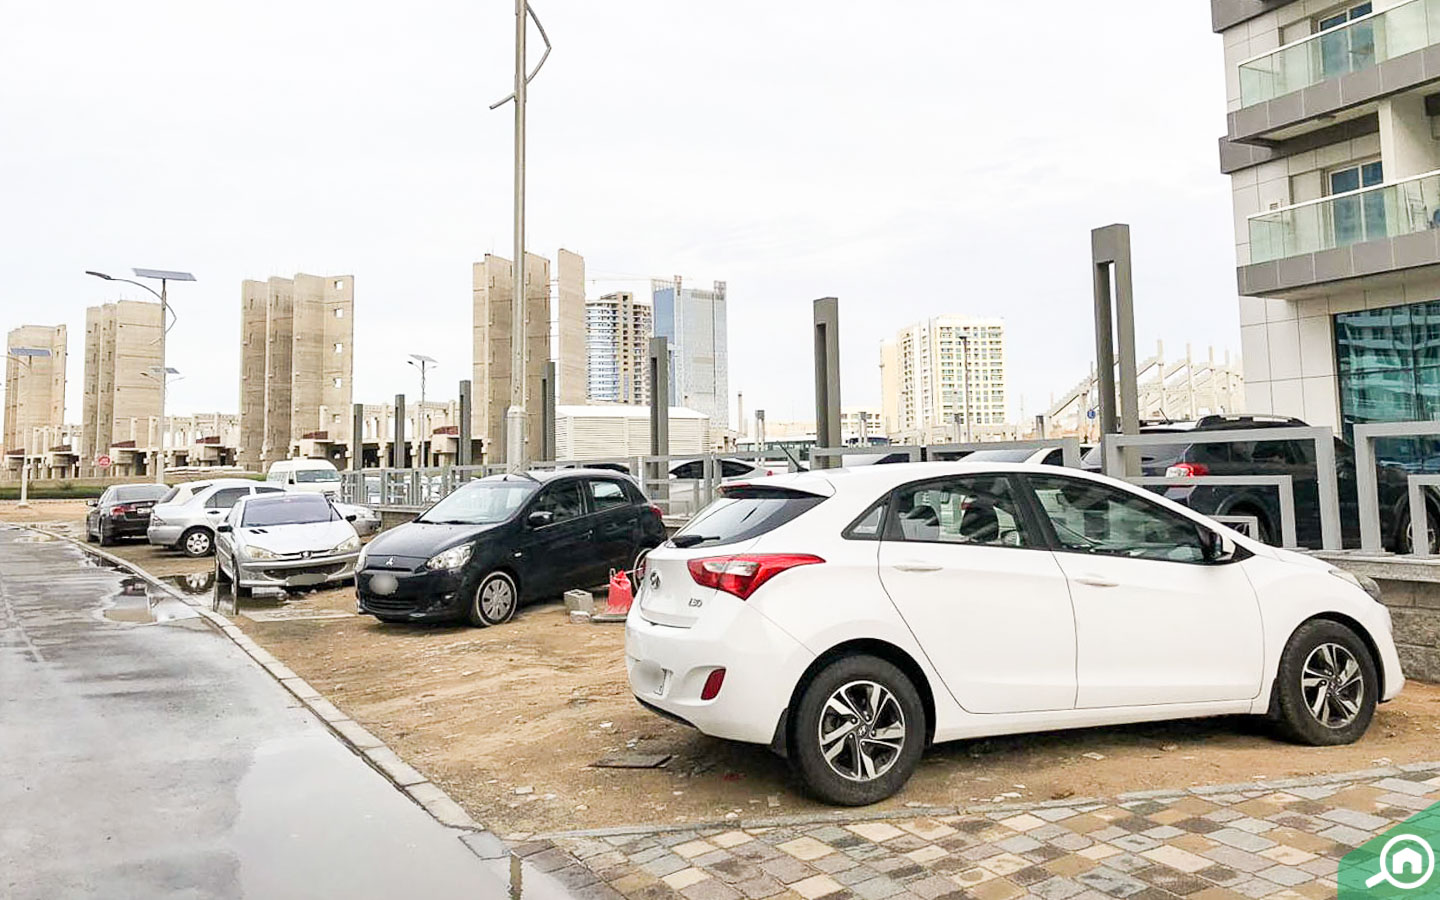 parking spaces in red residence